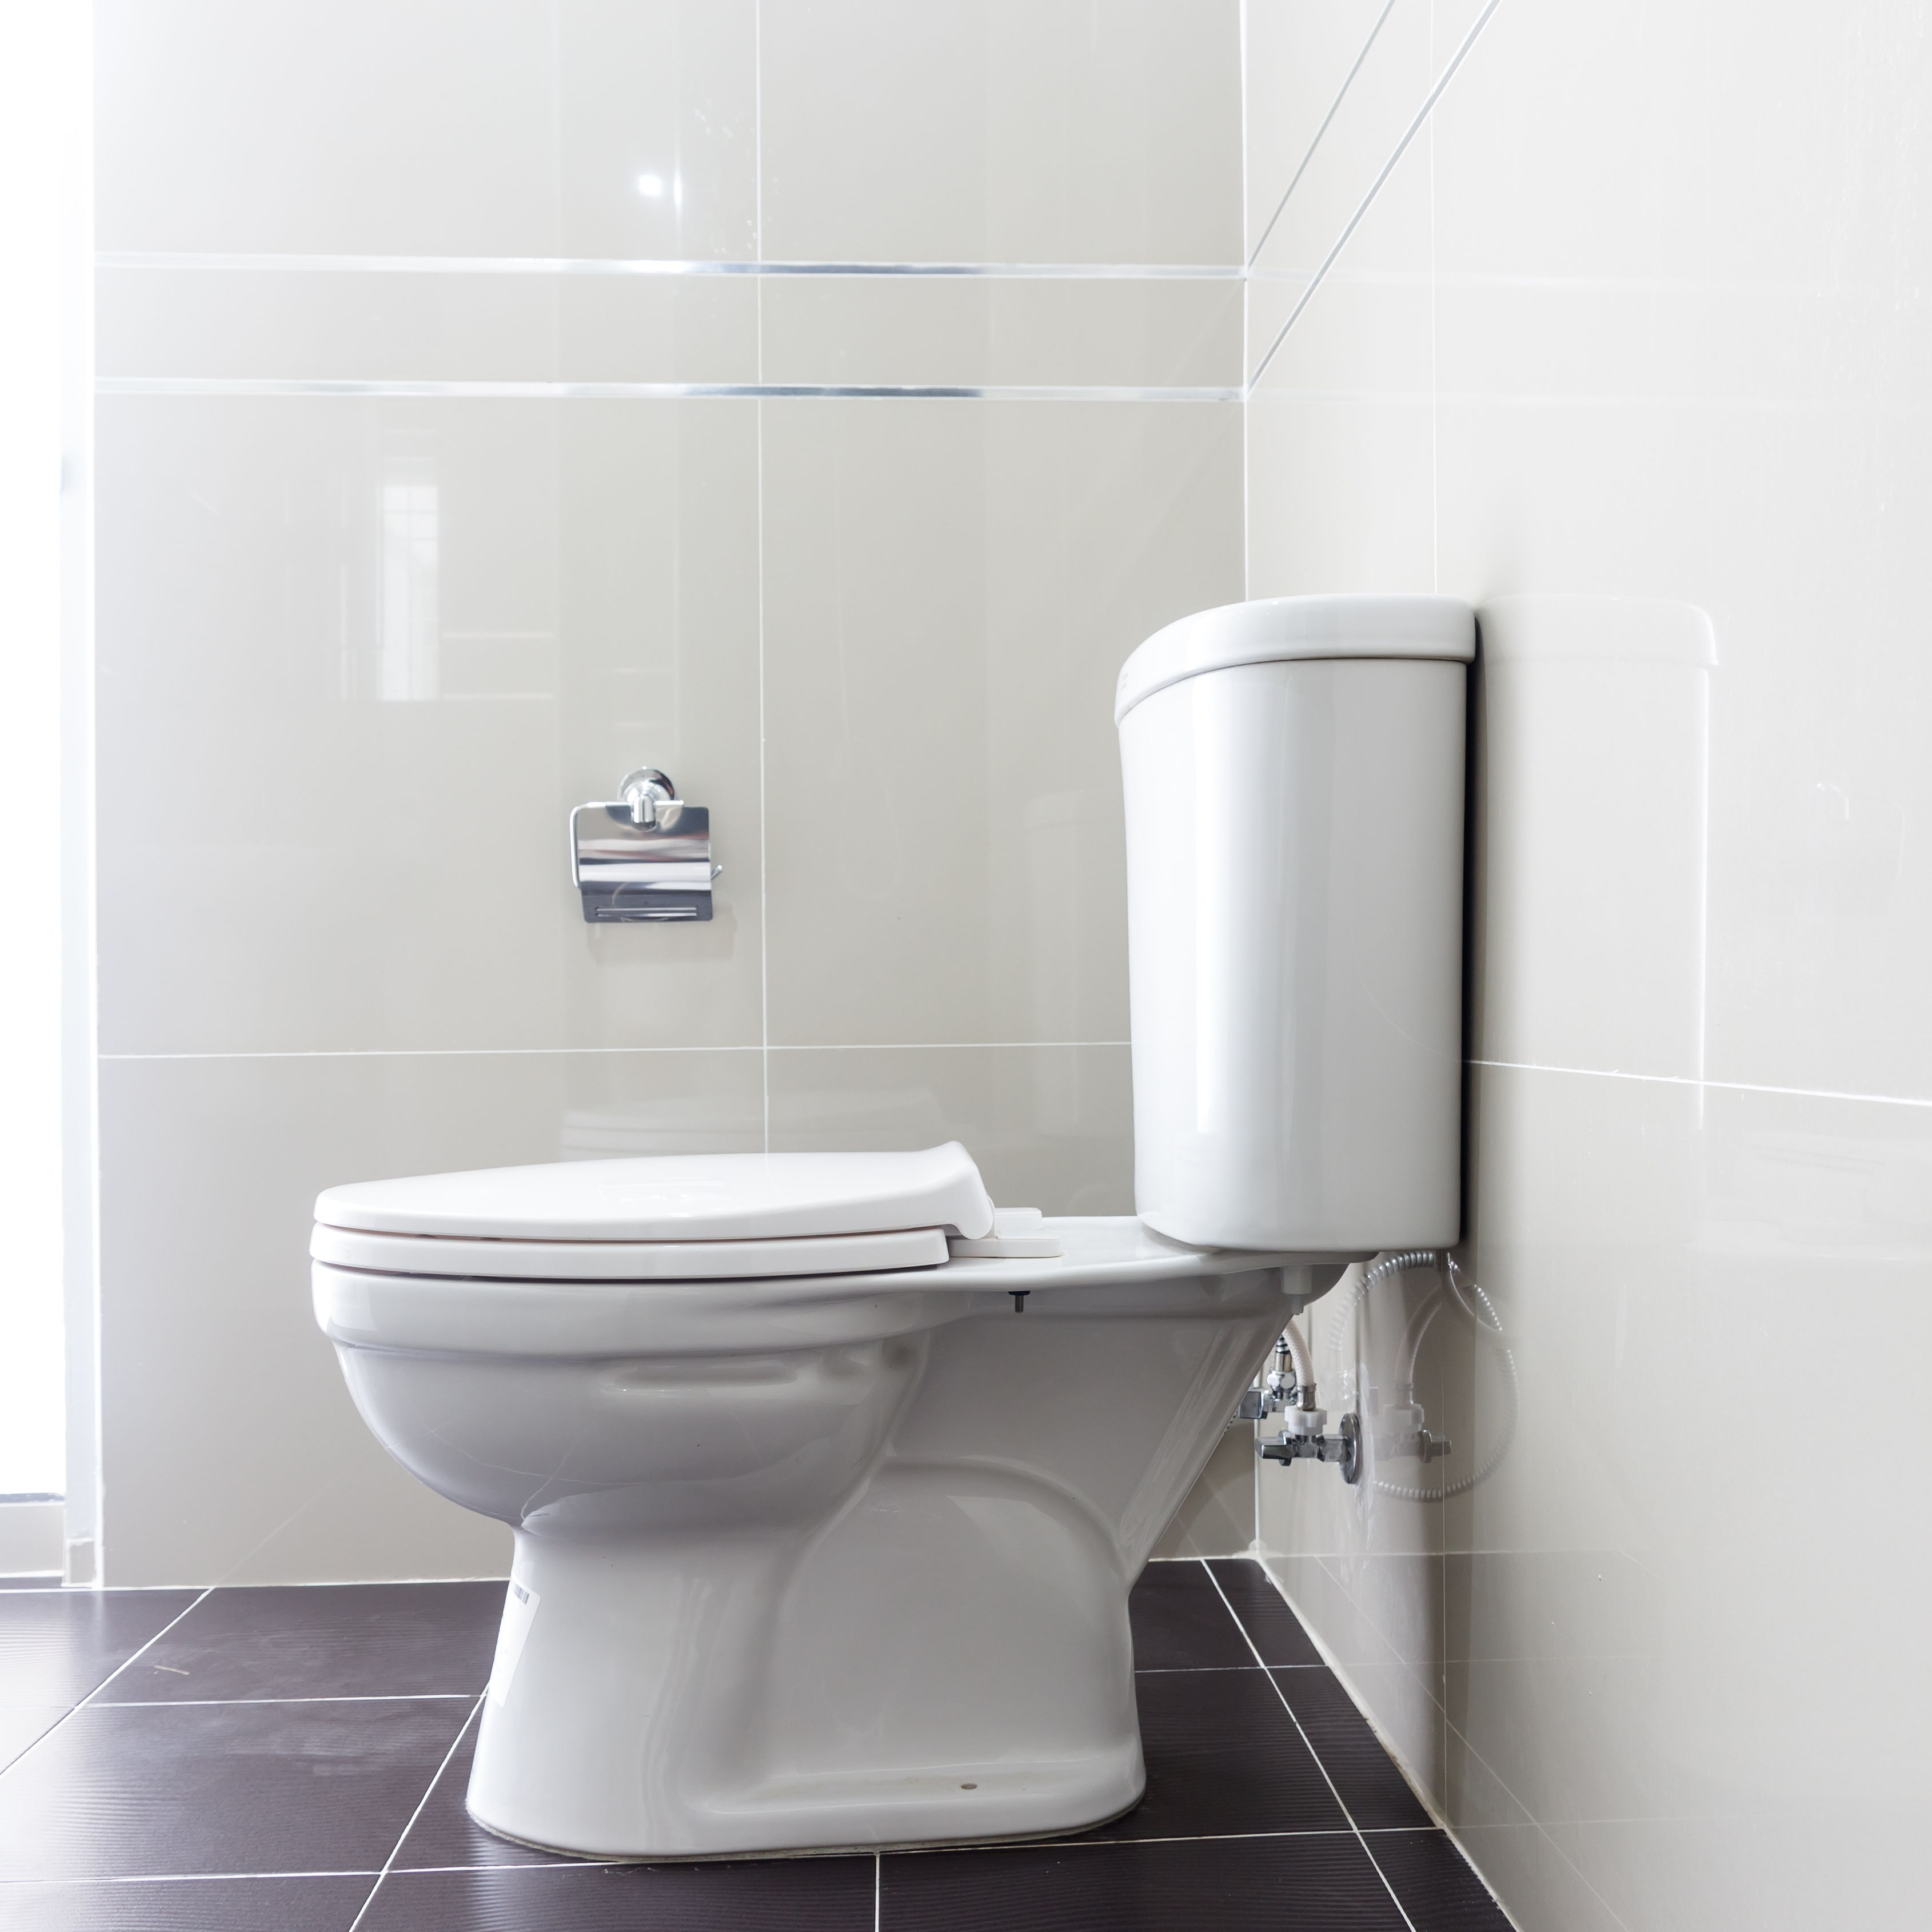 Urine Separating Toilets Are Not Quite As Wonderful As We Keep Saying They Are